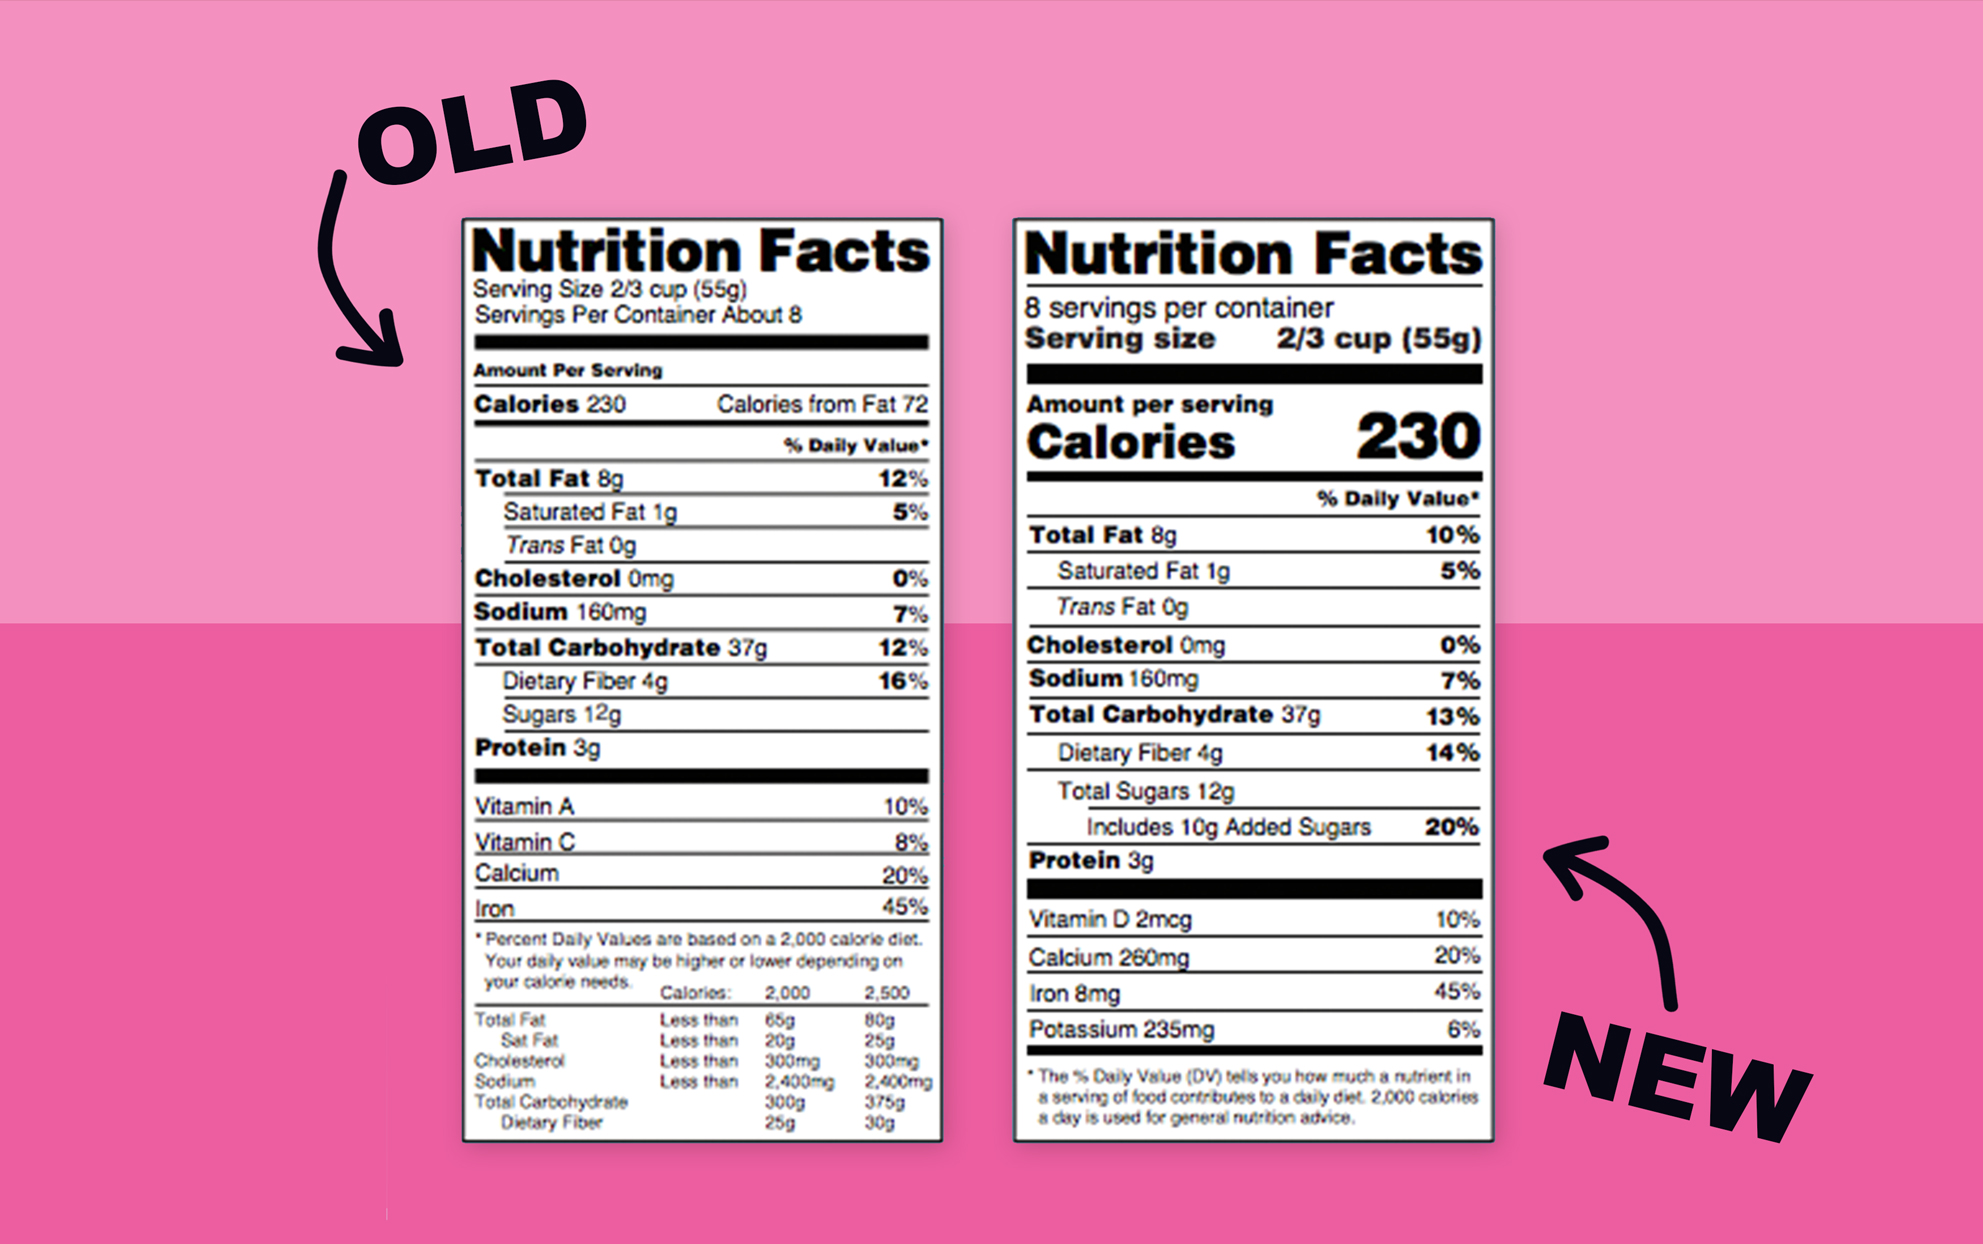 the old and new version of the nutritional Facts label on a pink background